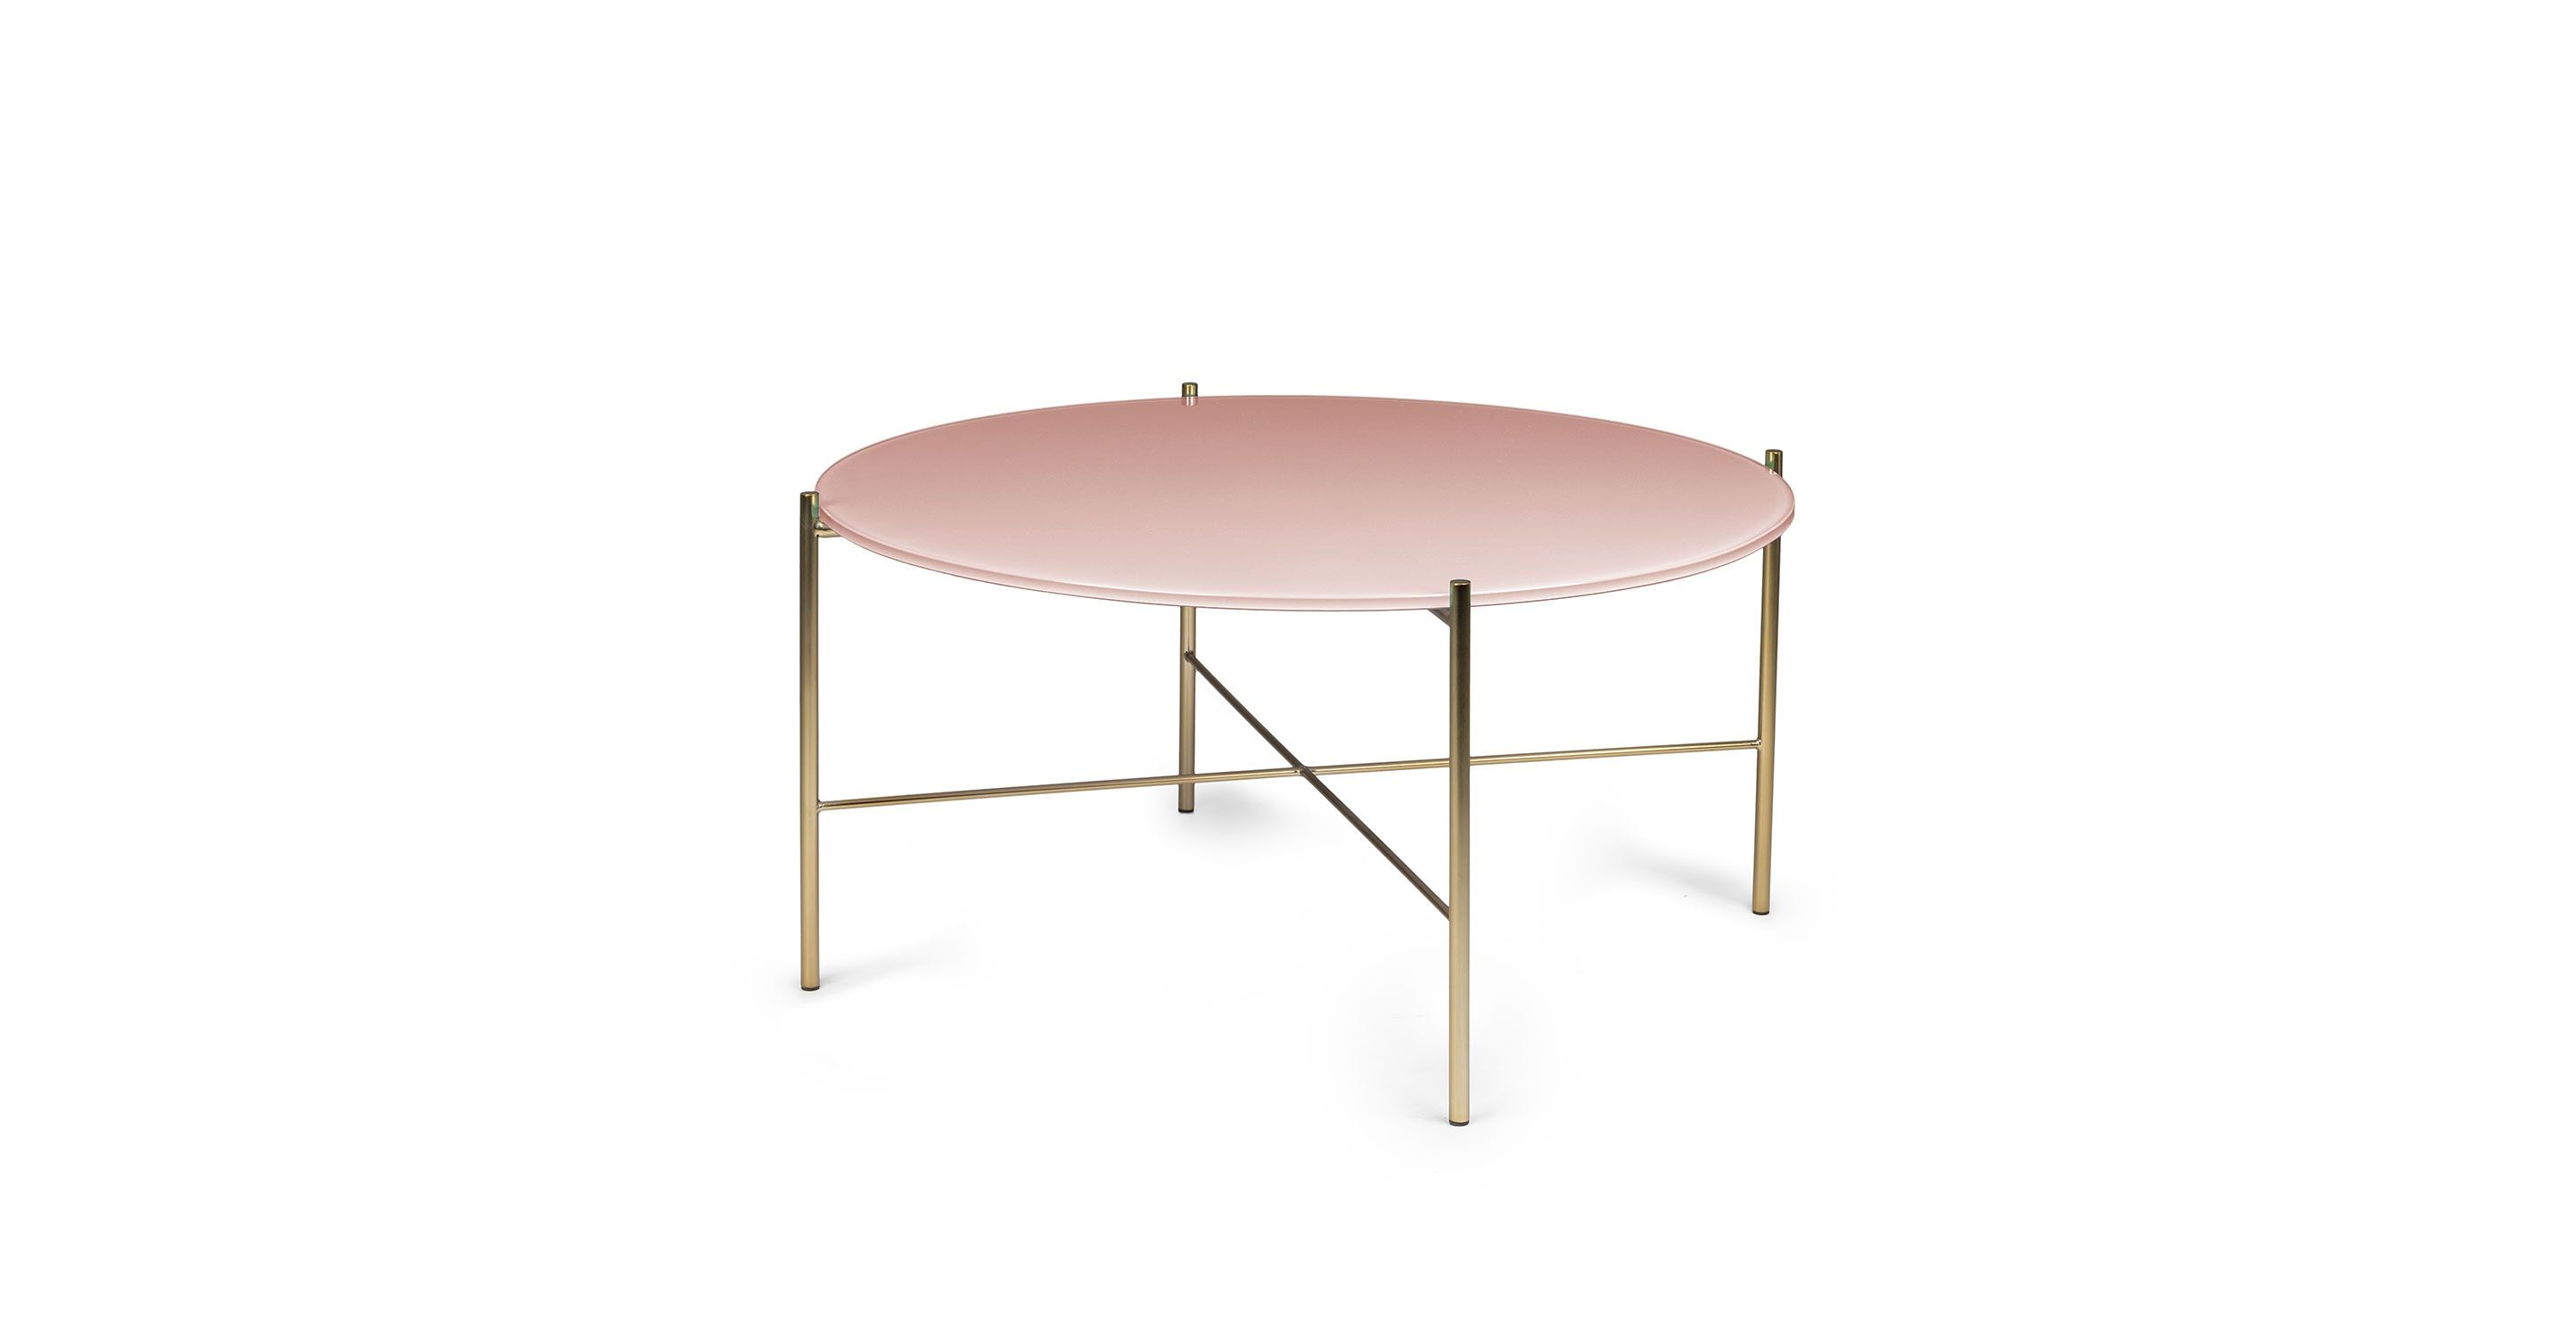 Silicus Pink Round Coffee Table Mid Century Modern Coffee Table Round Glass Coffee Table Dining Table Lamps [ 1500 x 2890 Pixel ]